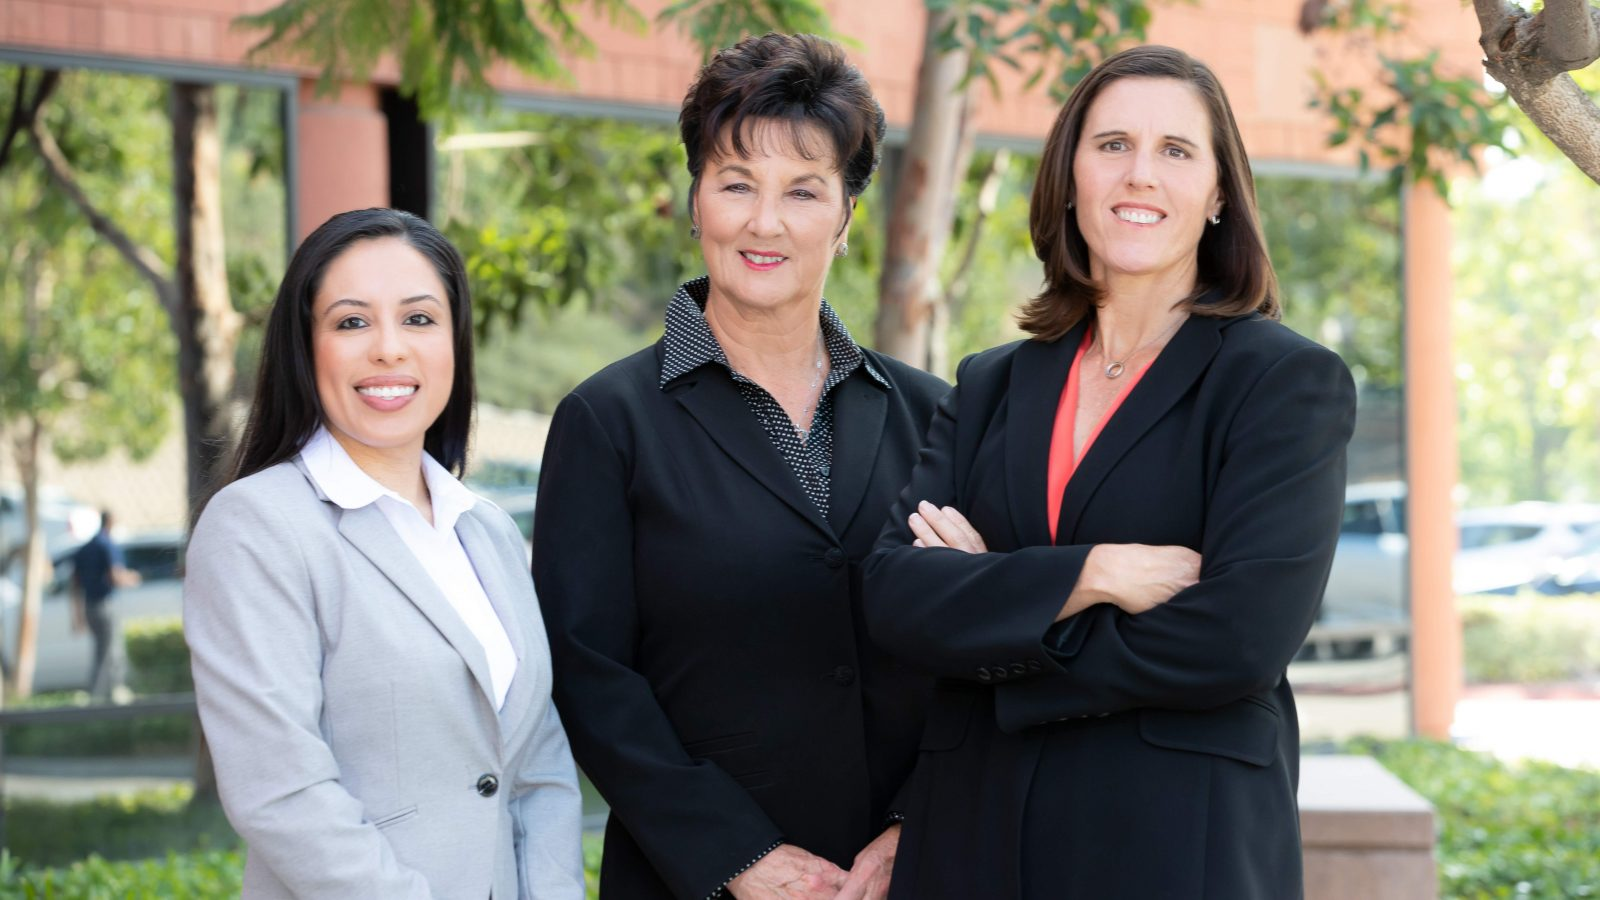 Three female lawyers in front of a building.